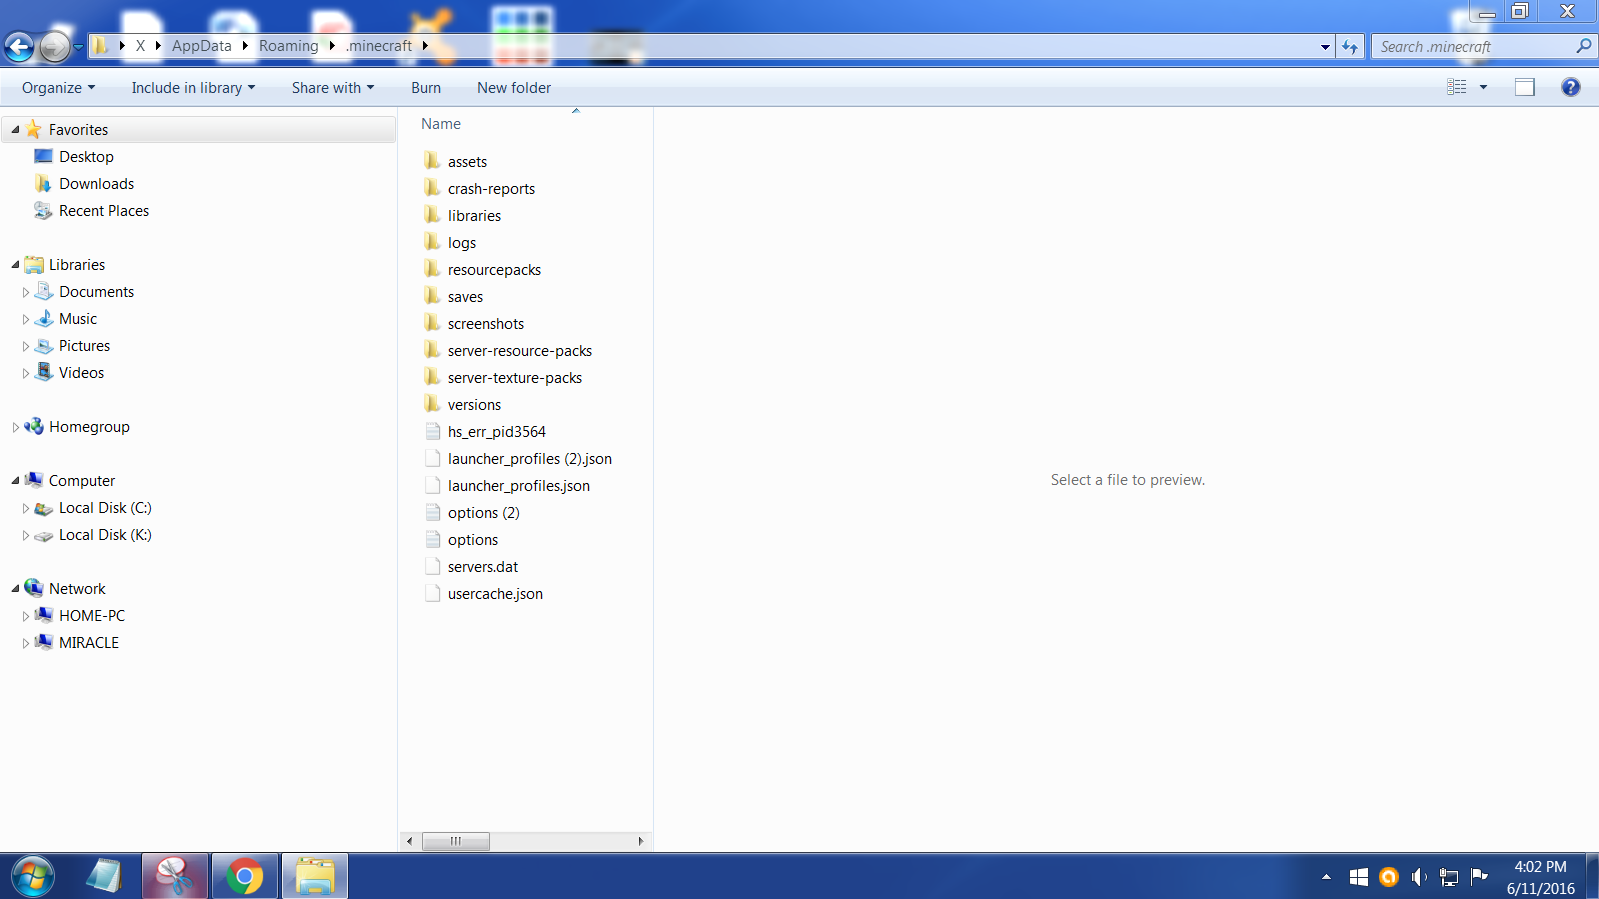 Moved my  minecraft folder to desktop and now everything is